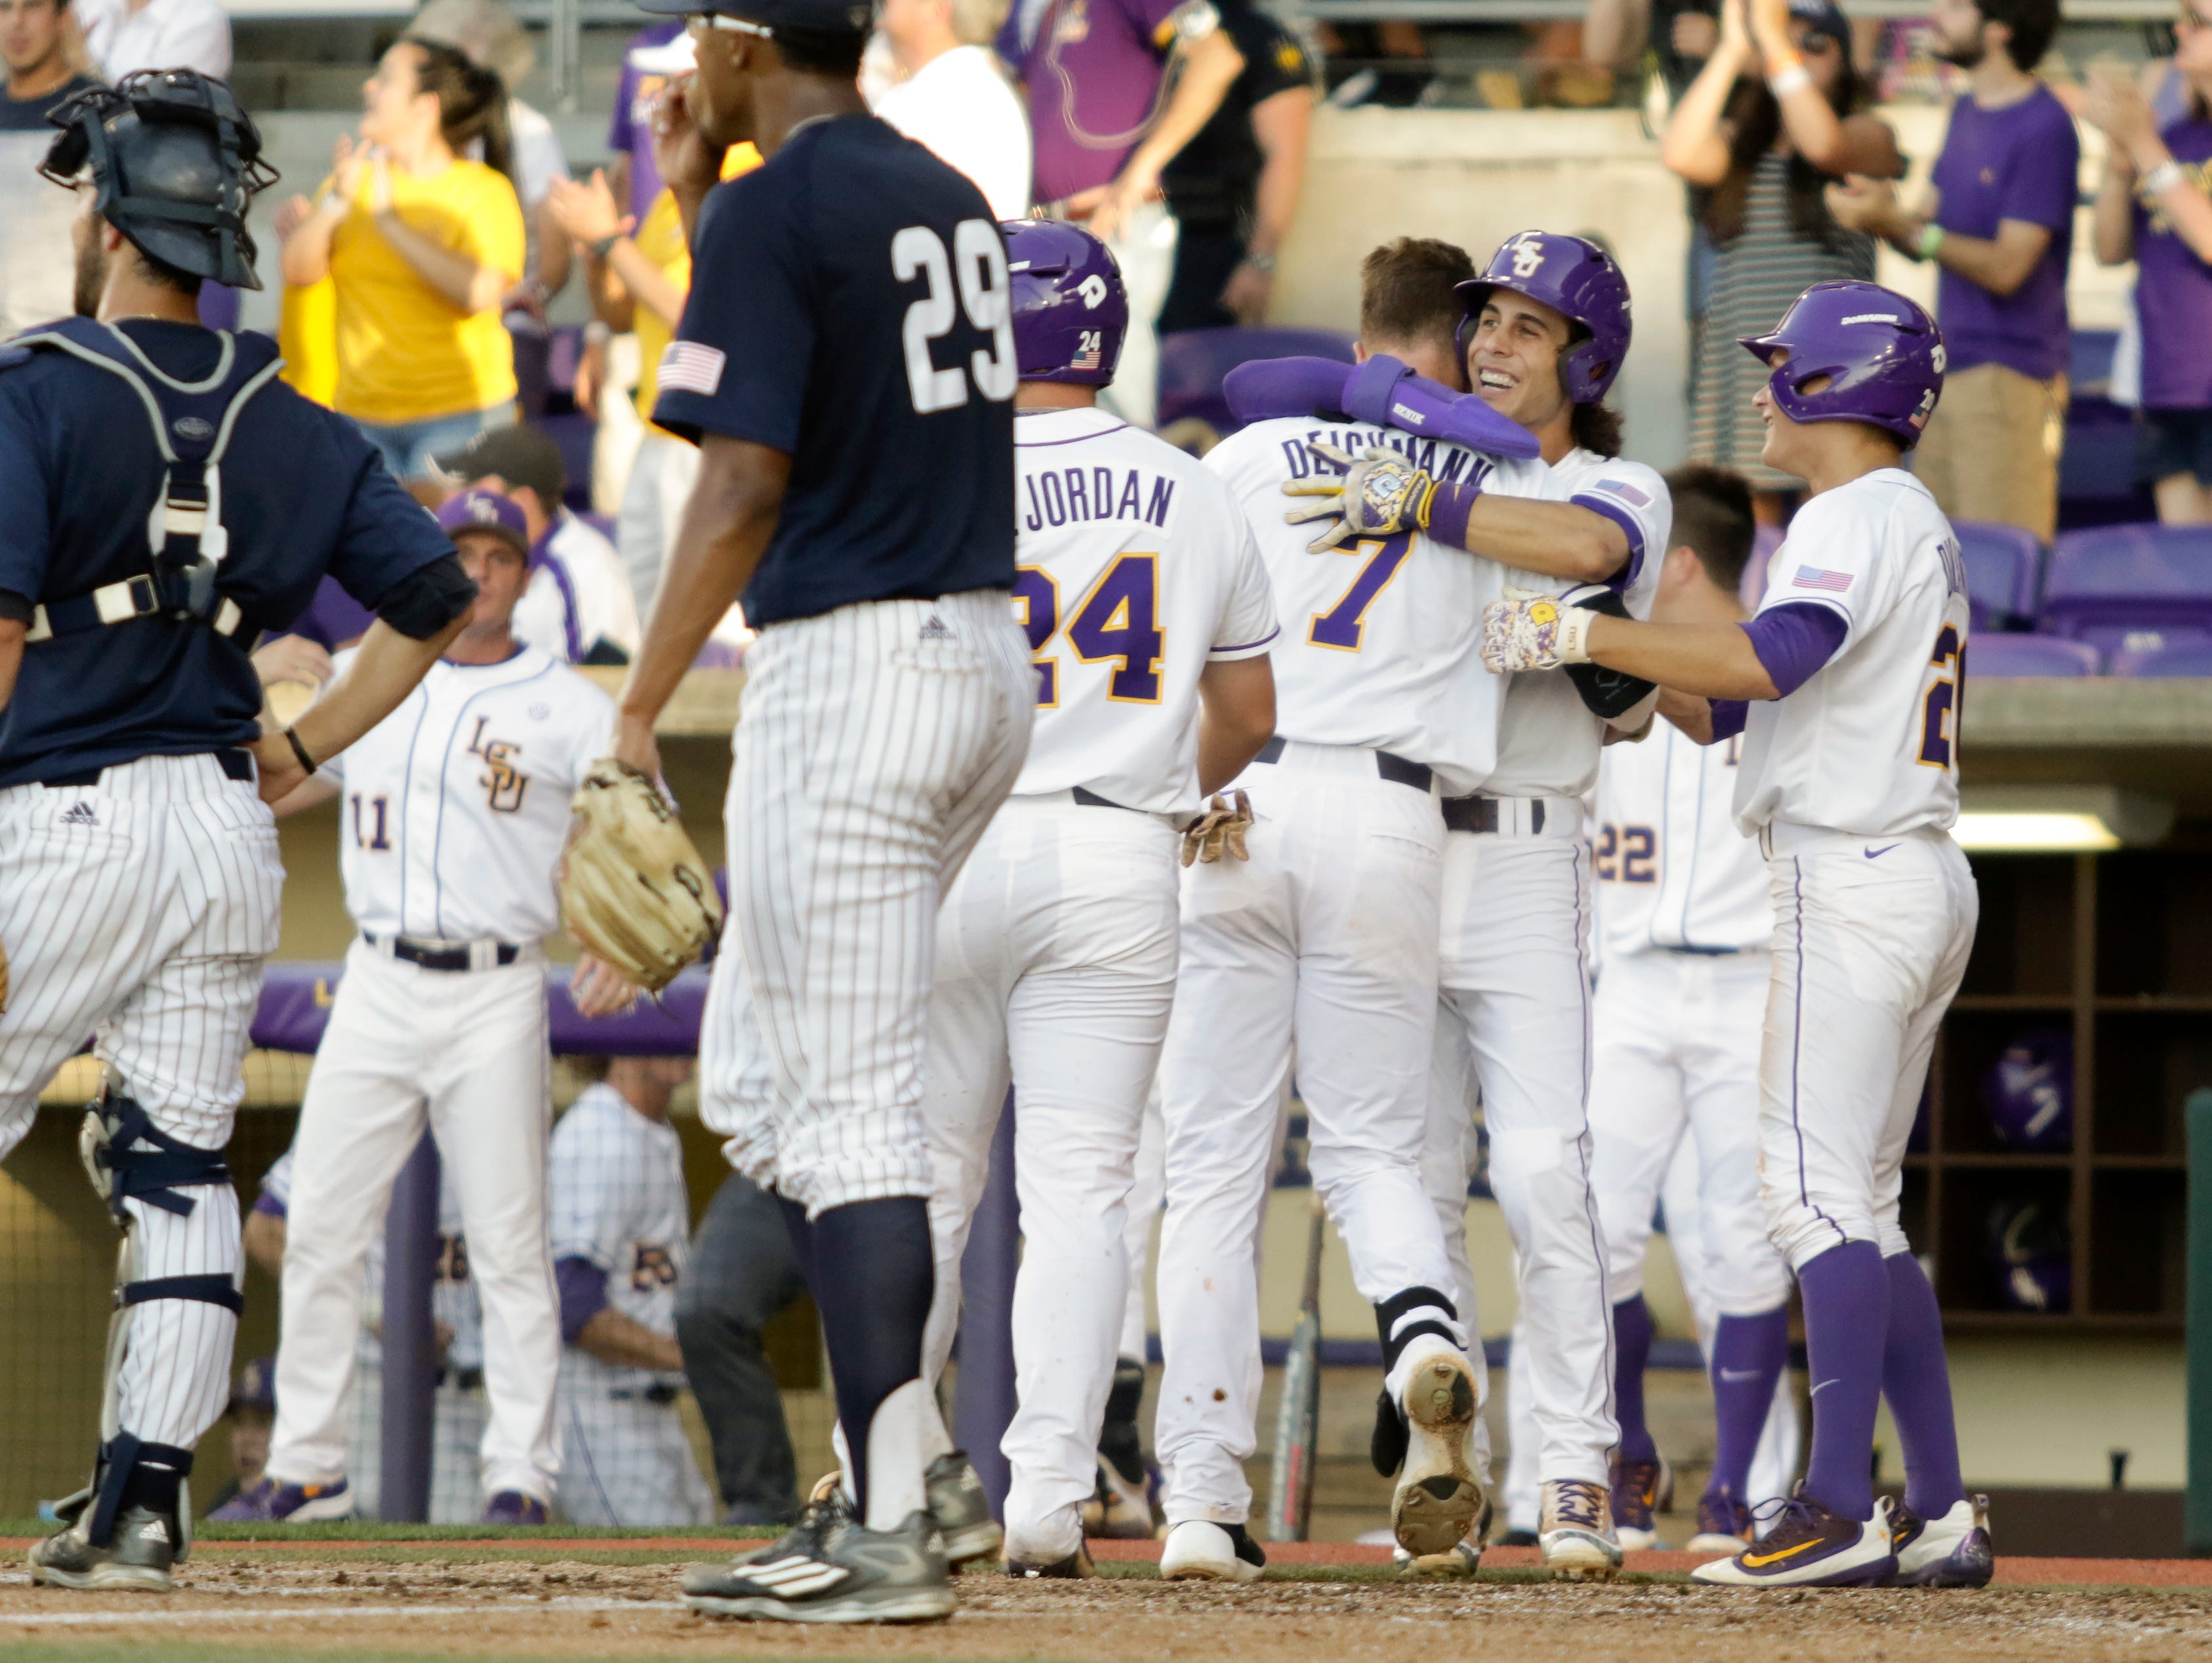 Greg Deichmann is greeted at home plate after hitting a bases loaded inside the park home run on Sunday at Alex Box Stadium in the Baton Rouge Regional of the NCAA Division 1 Baseball Championship.